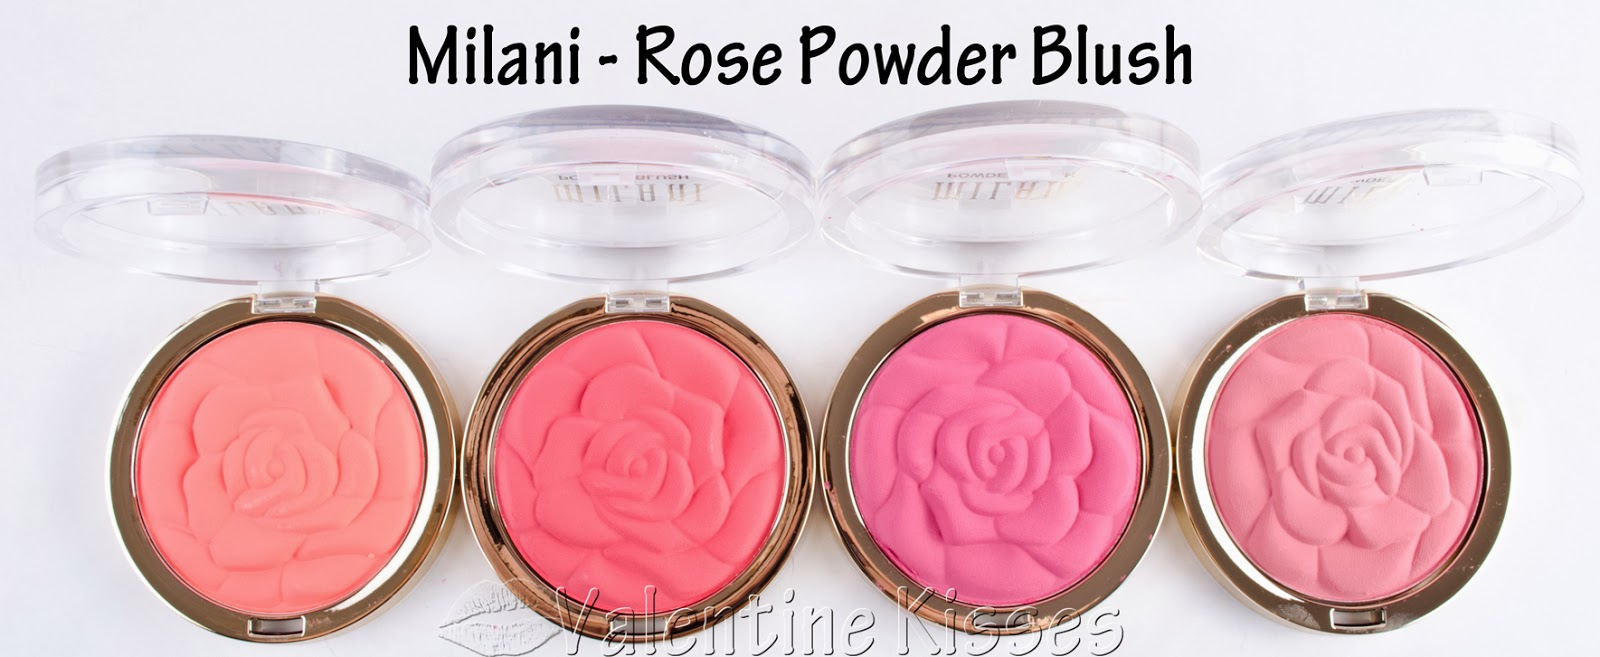 Valentine Kisses Milani Rose Powder Blush 4 New Limited Edition Moodmatcher Liquid Matte Just Shades Pics Swatches Review